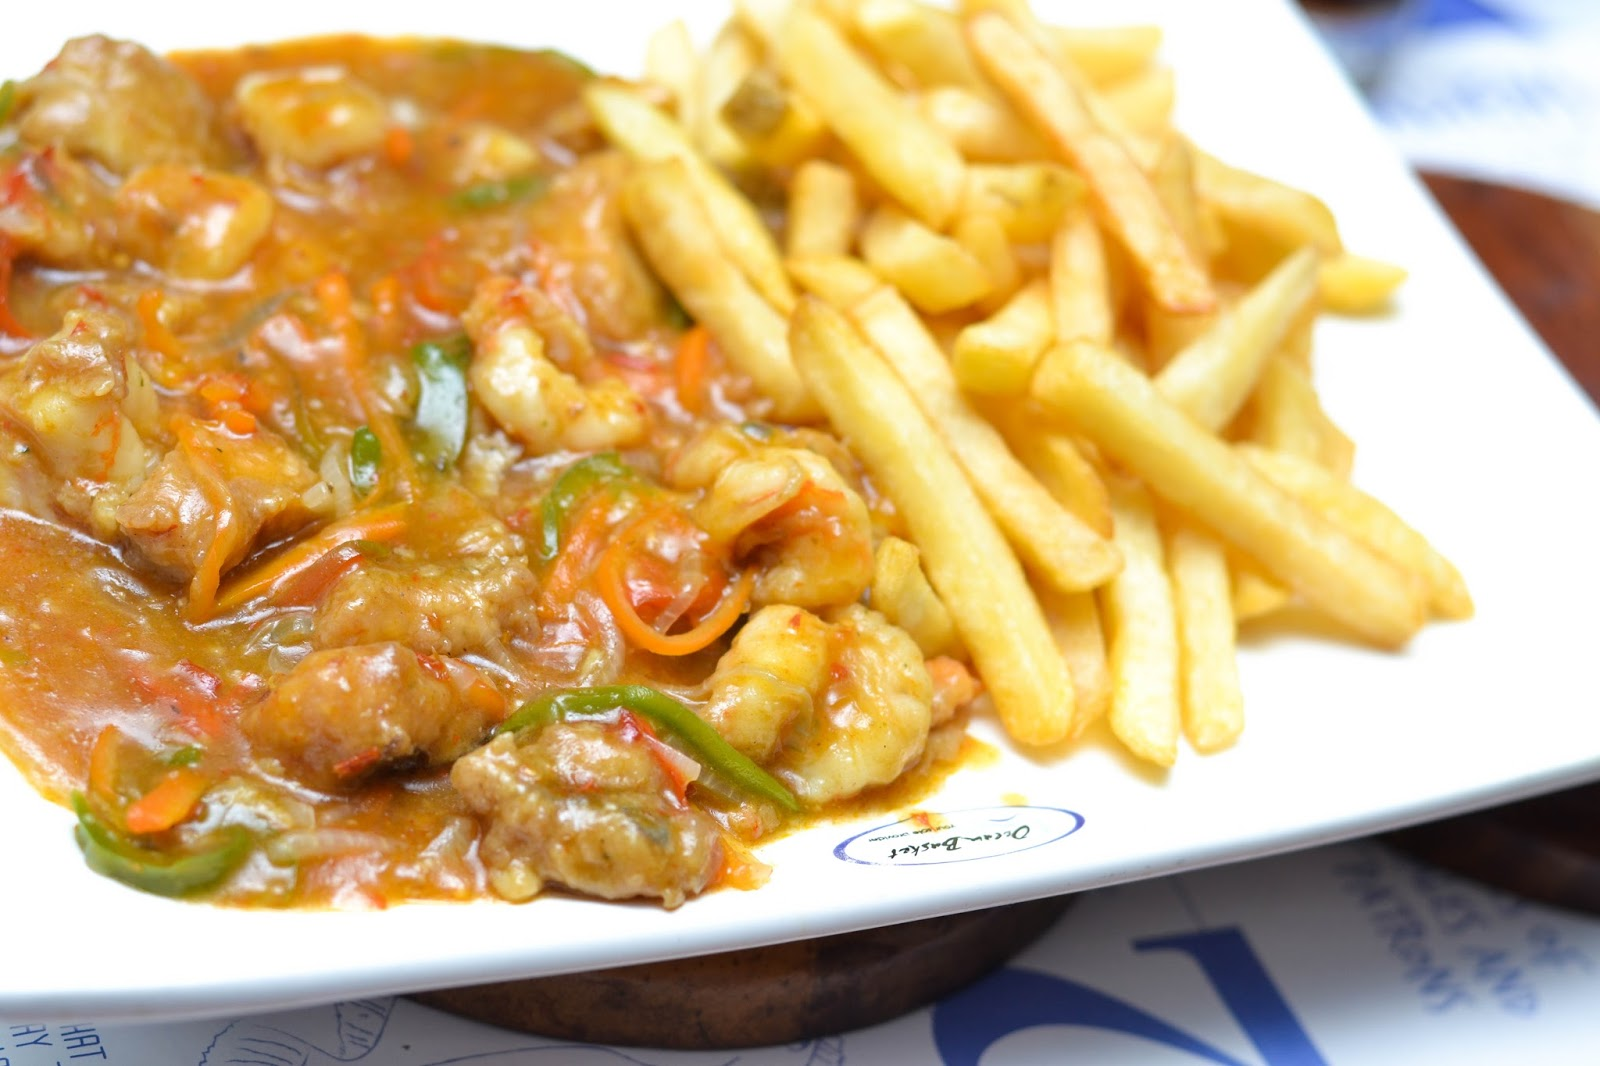 Chips with  Fish & Prawns in Oyster sauce.